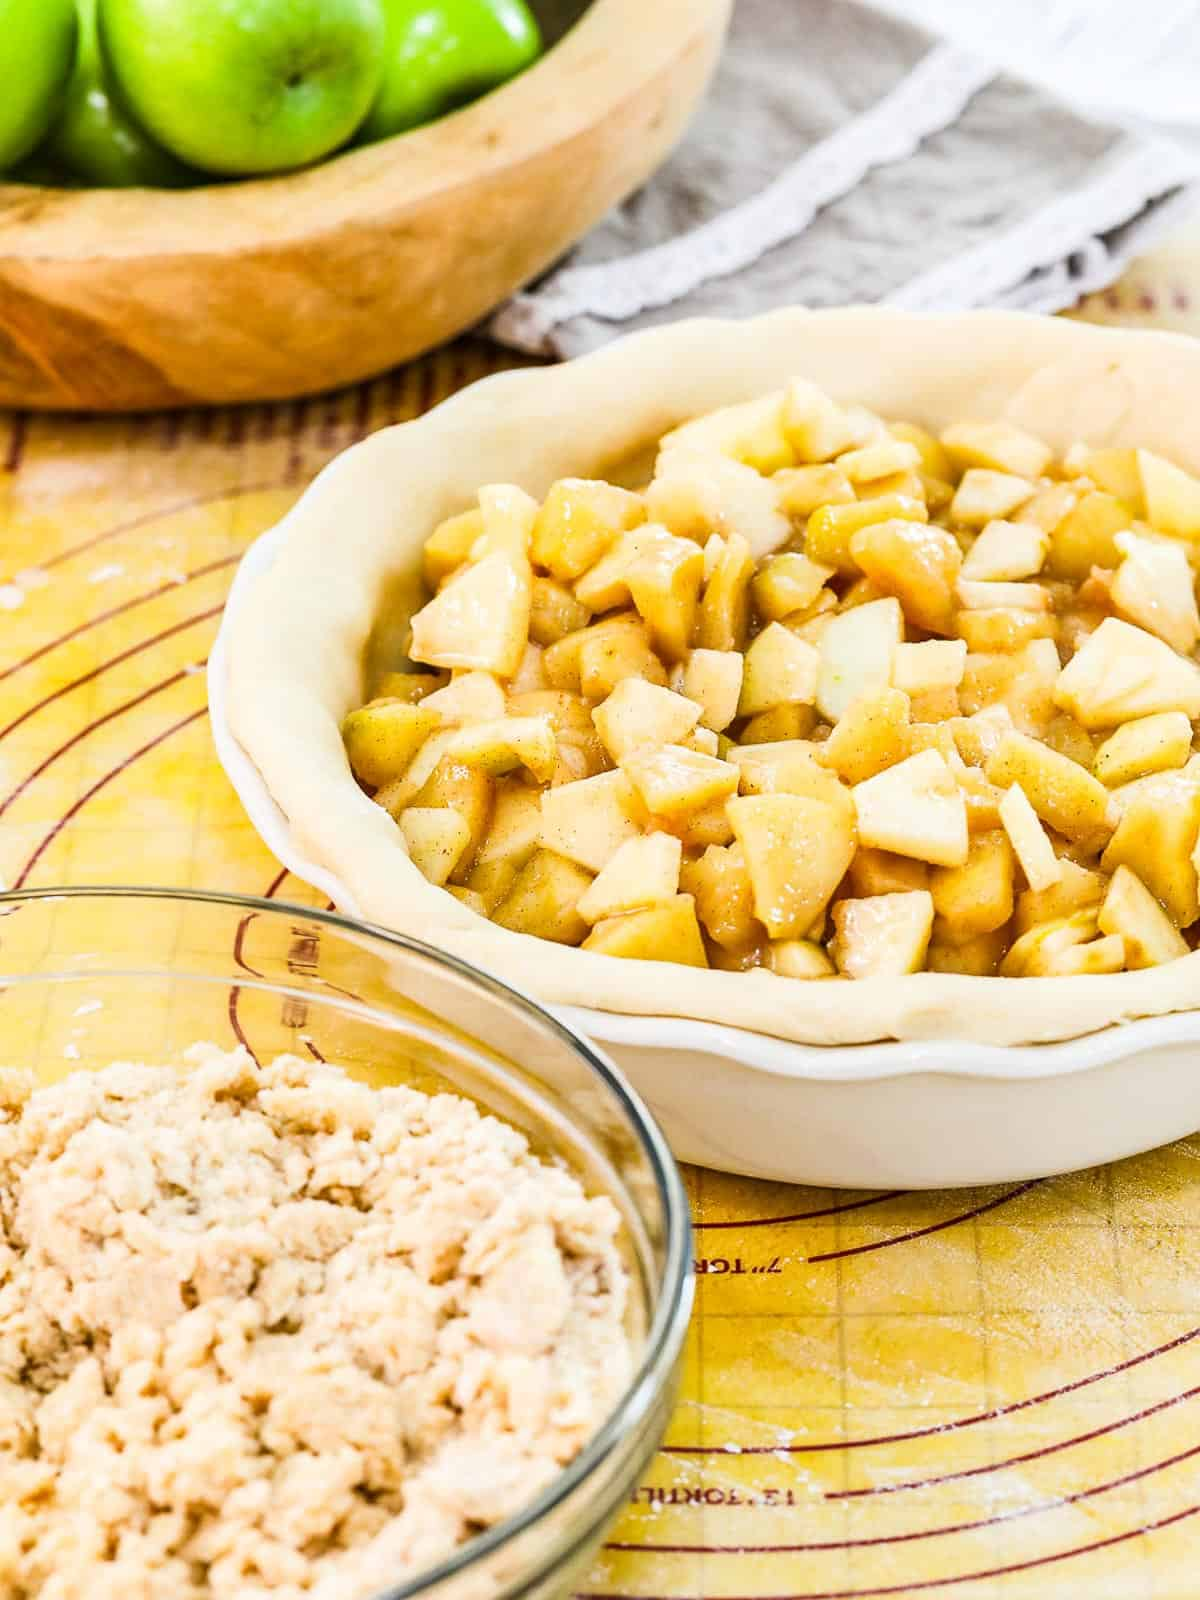 A white pie dish with pie dough filled with apple pie filling ready to bake.